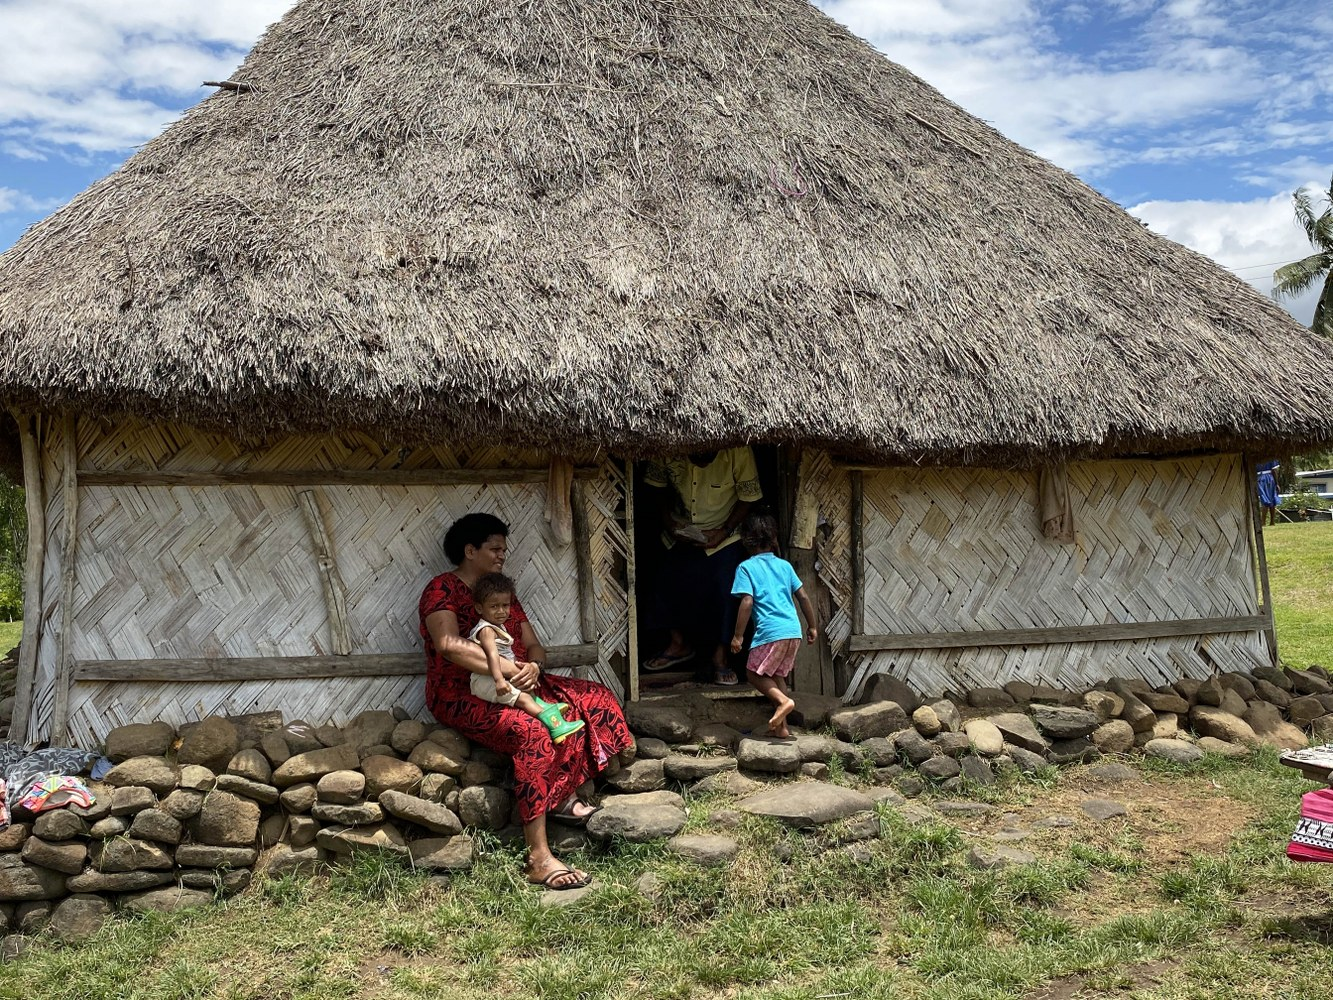 Typical Fijian family and their house living in their world of happiness